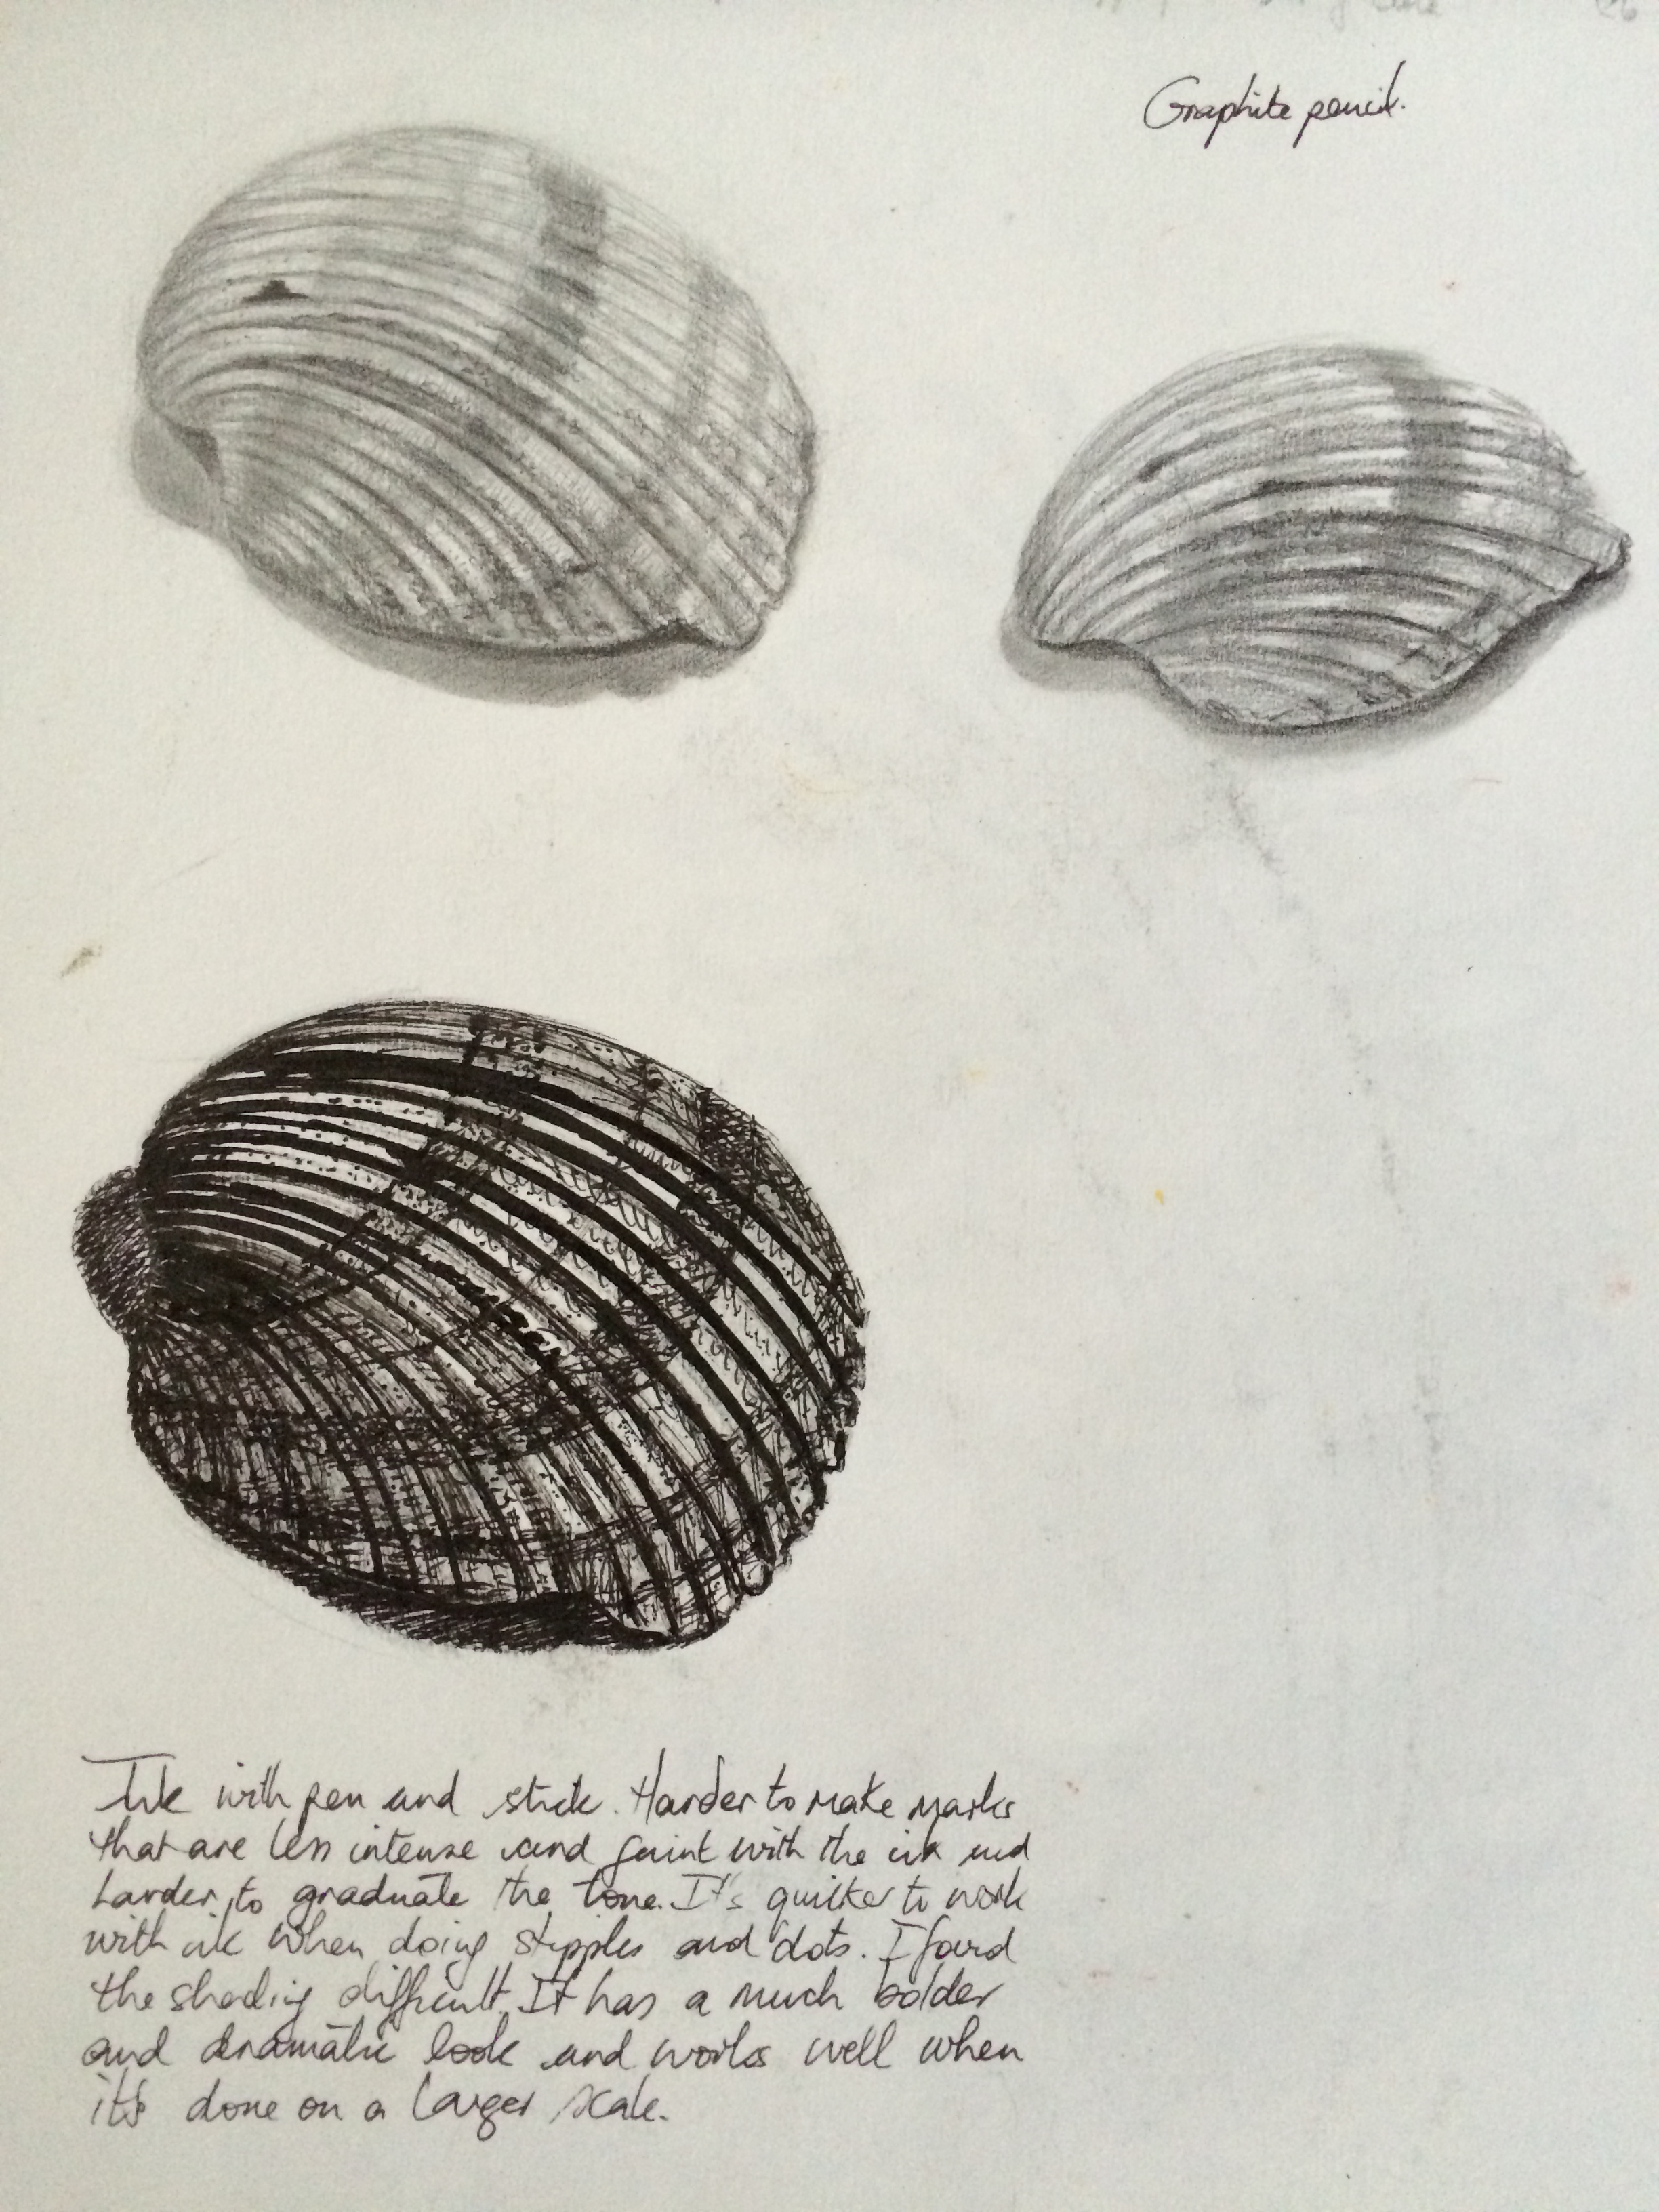 Drawn shell pen drawing Pencil graphite black and with